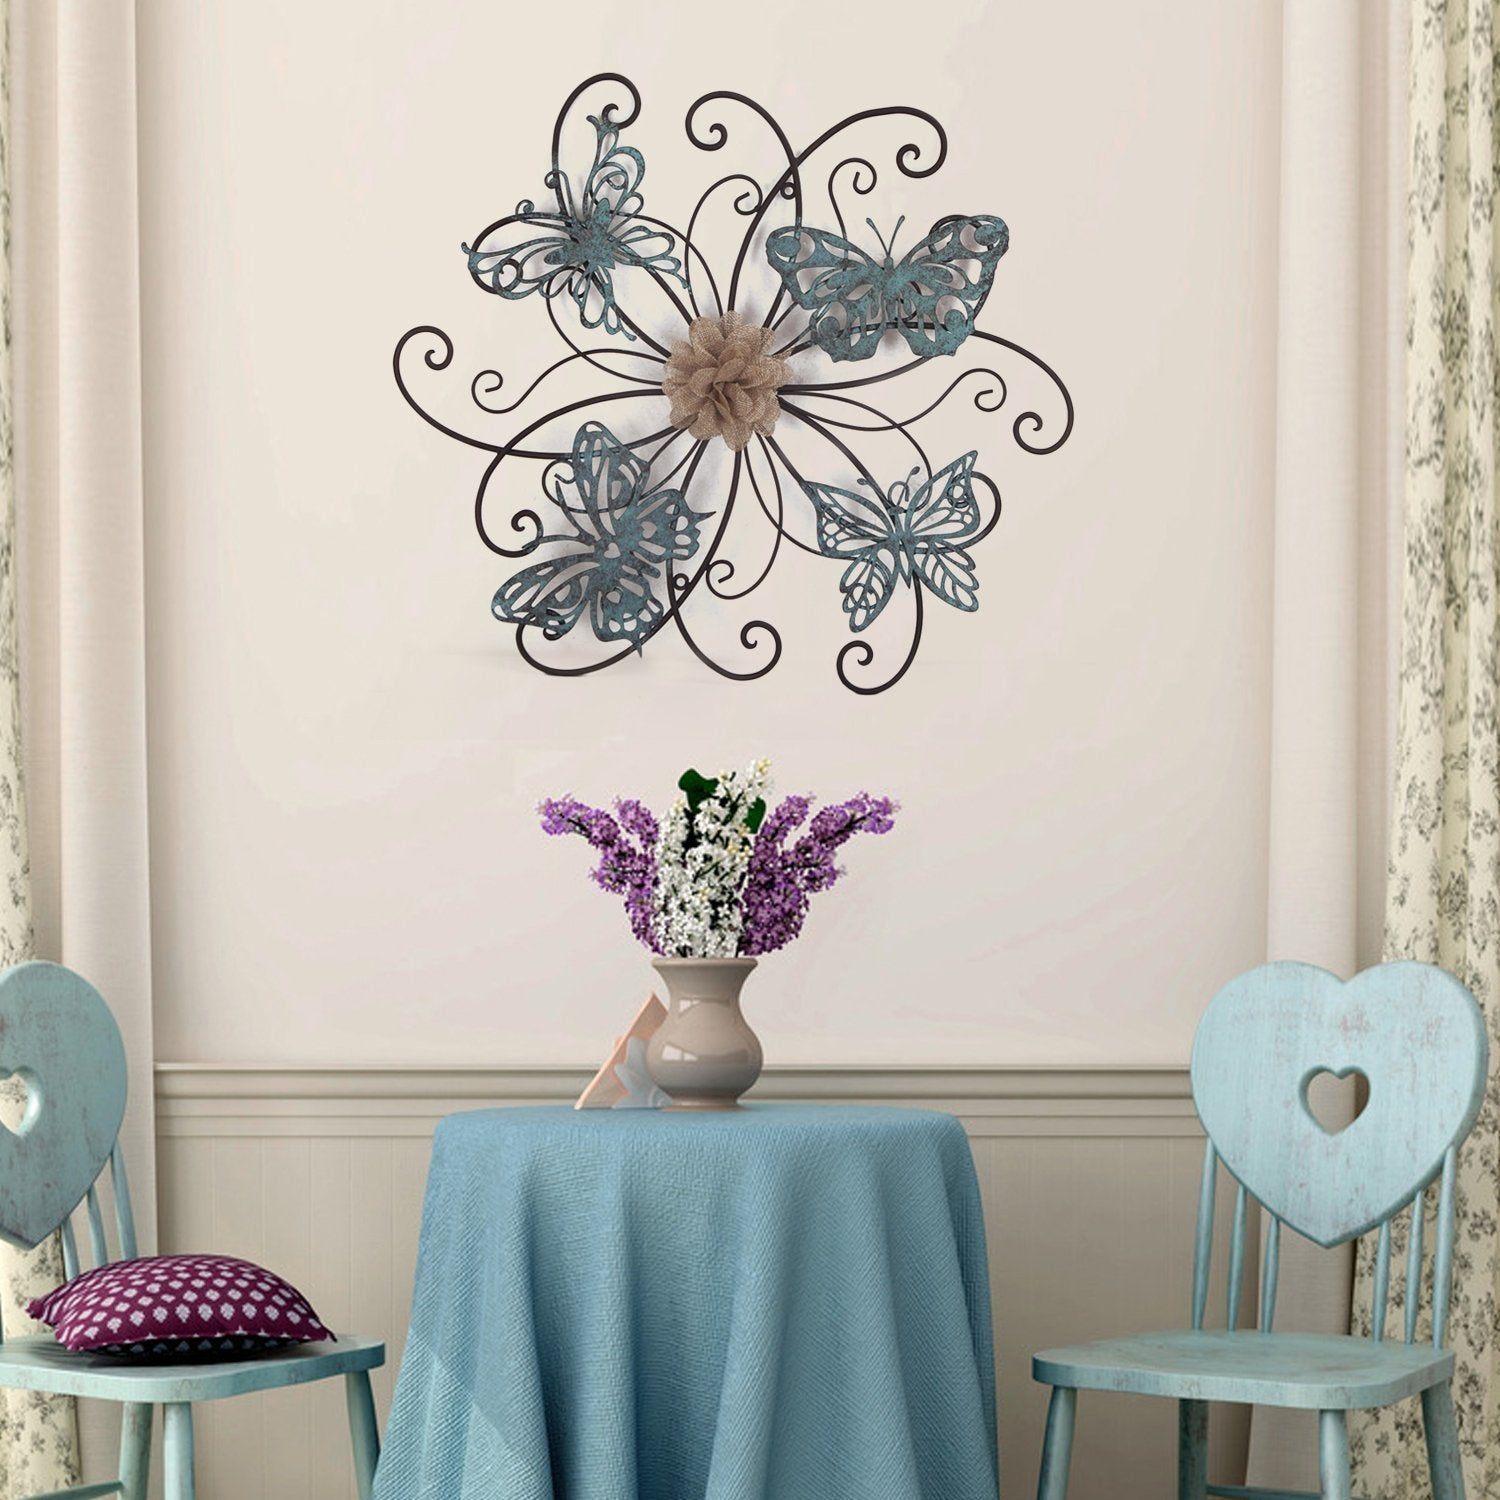 Ideas: Dazzling Butterfly Wall Decor Wall Art Design For Inside Reeds Migration Wall Decor Sets (set Of 3) (View 13 of 30)